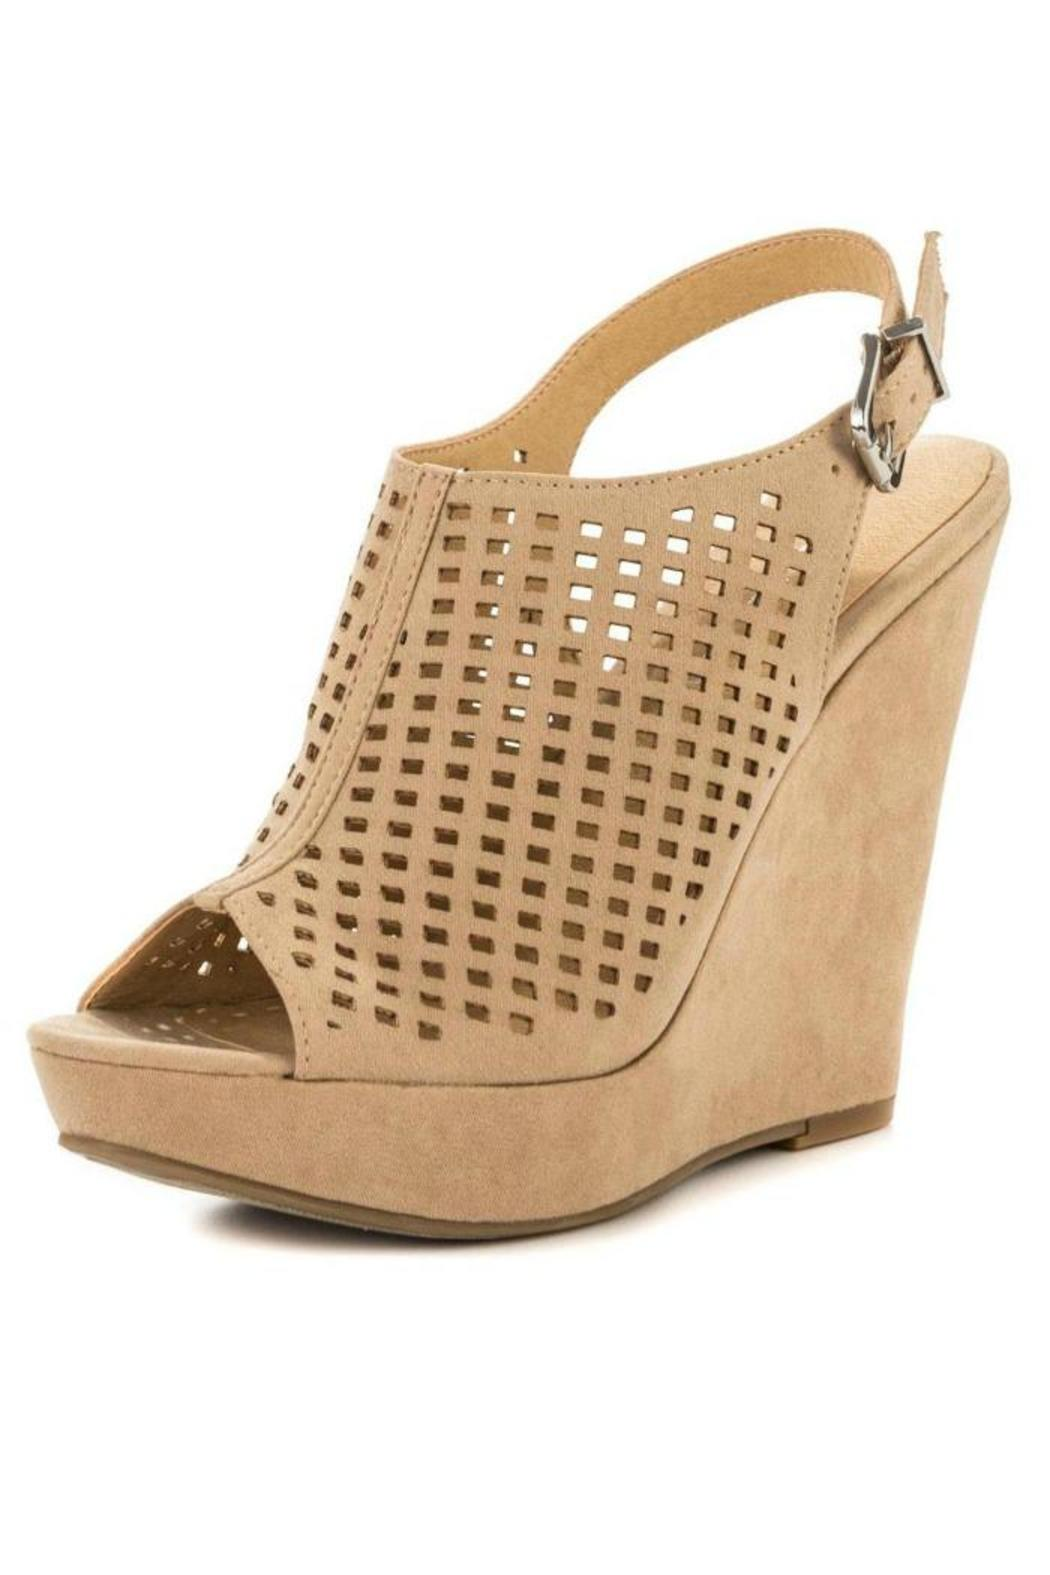 laundry retro wedge from california by heel sole